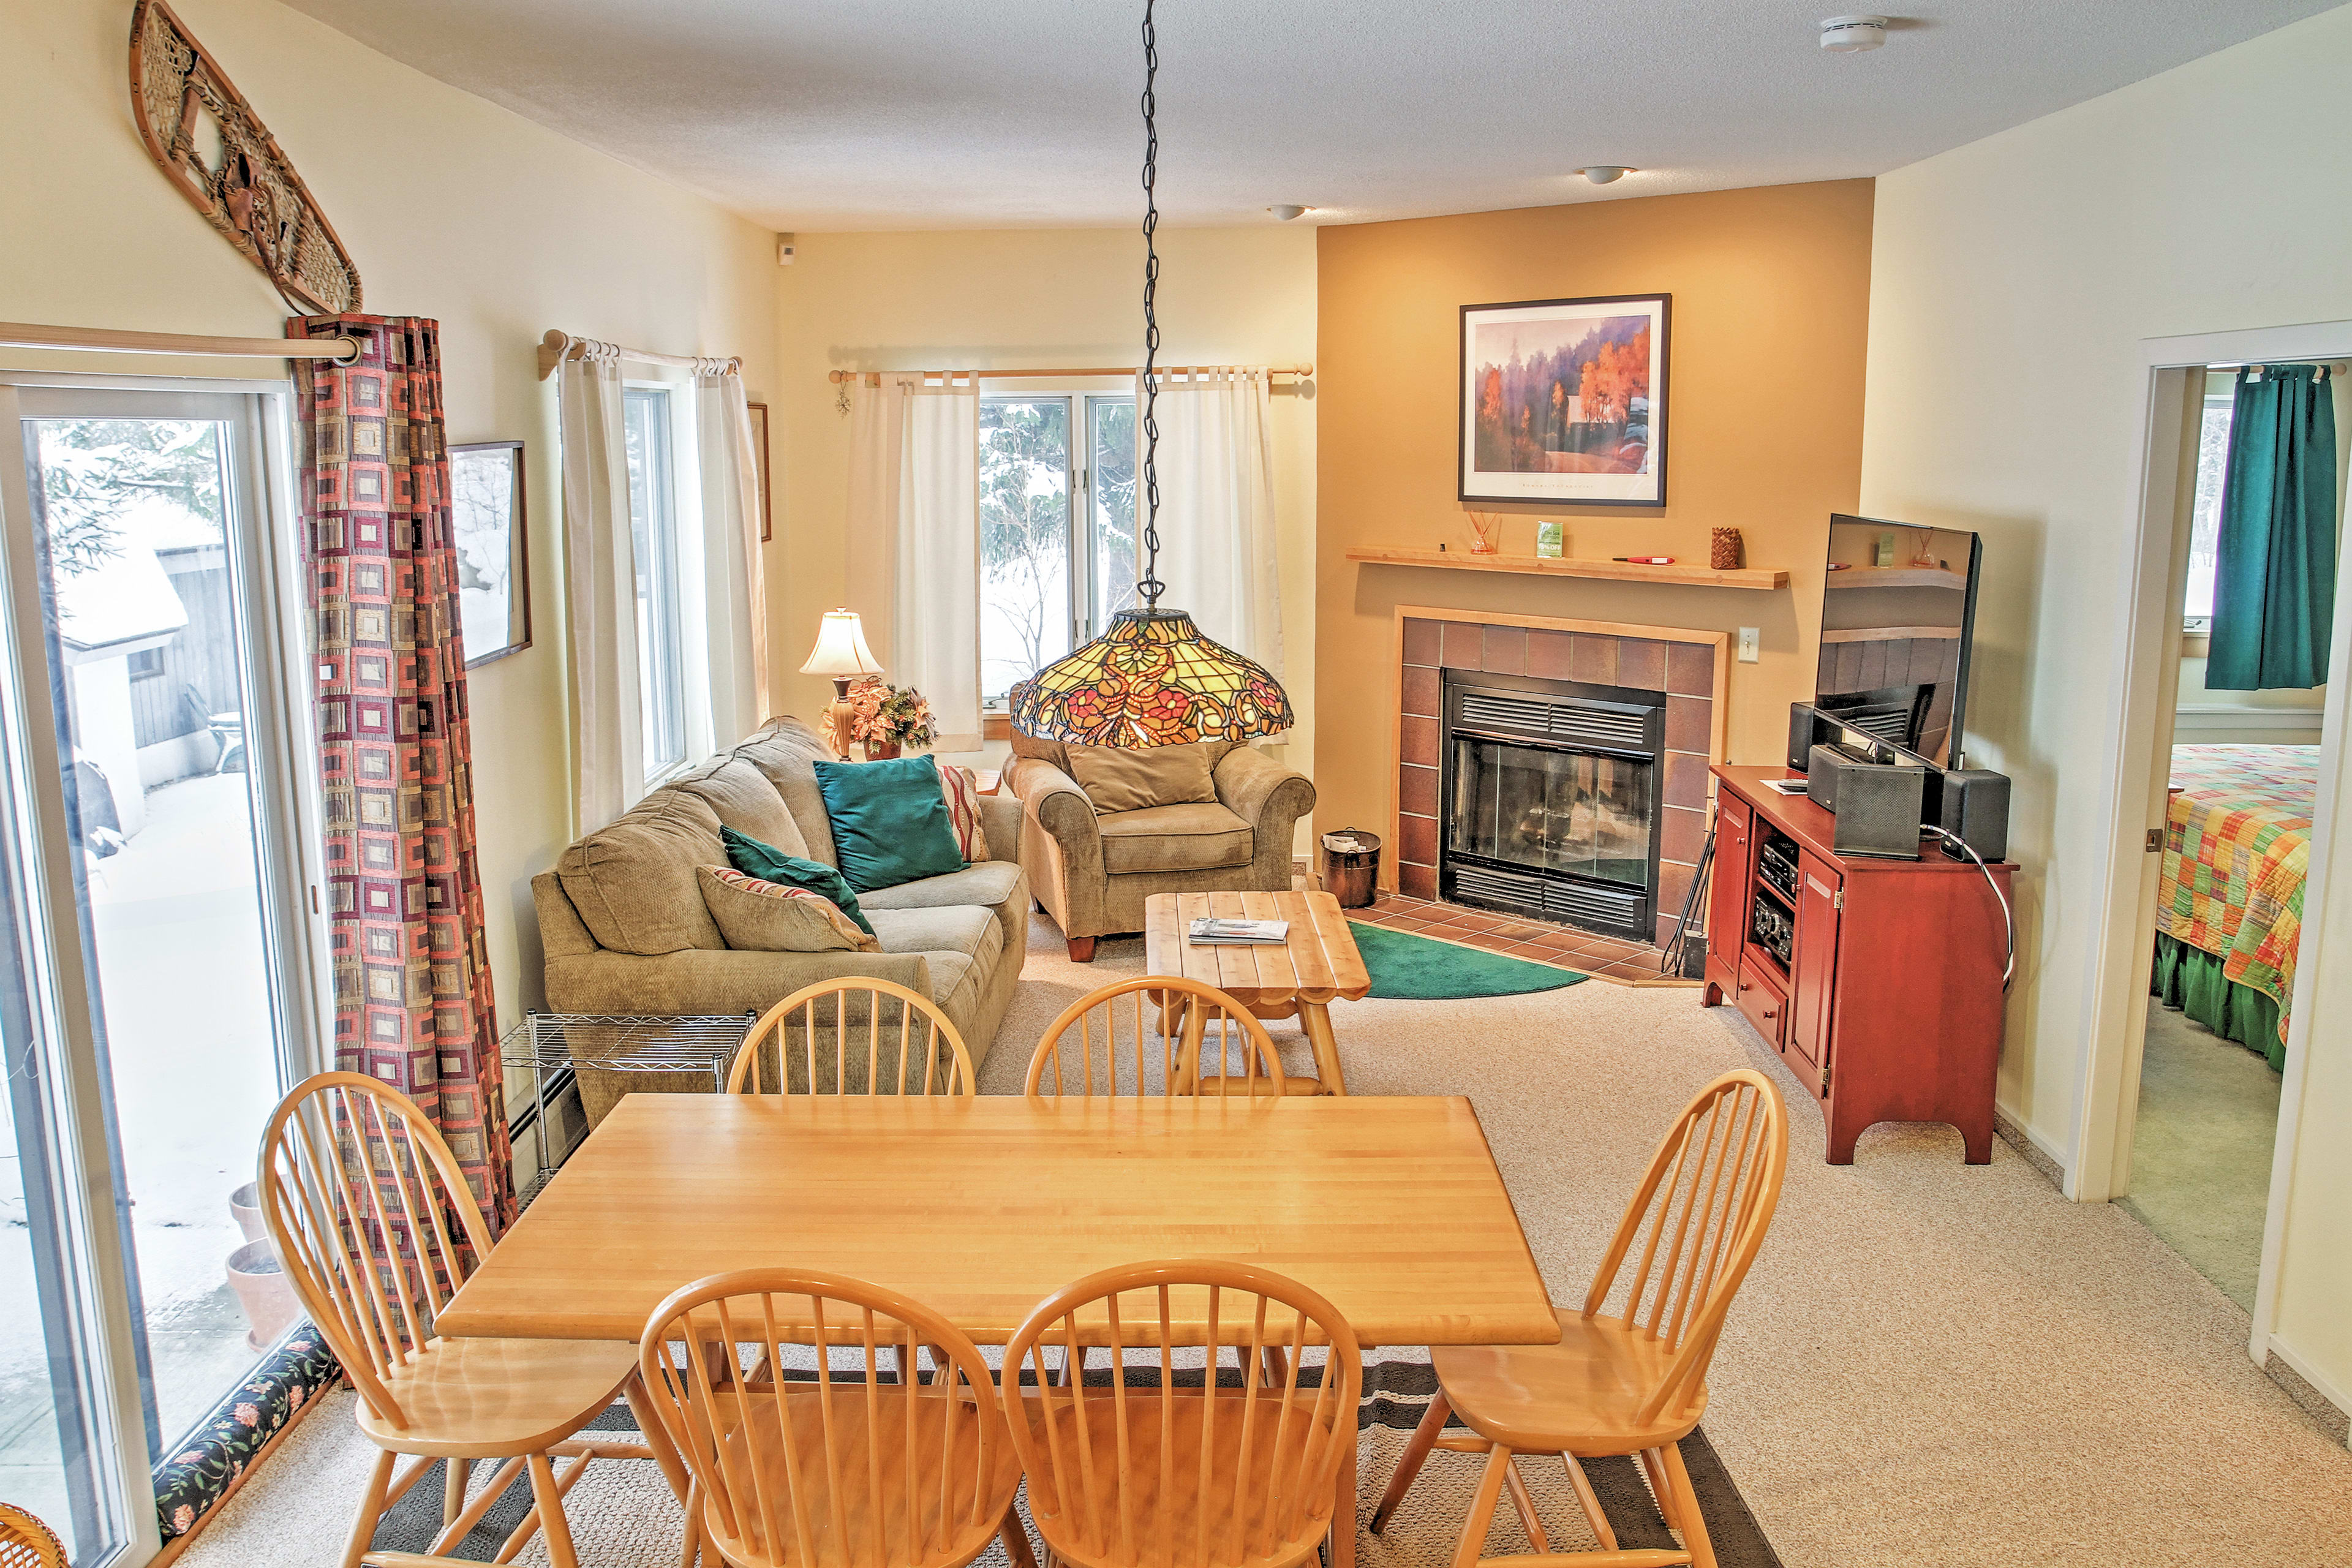 This condo has everything you could ask for in a vacation rental!